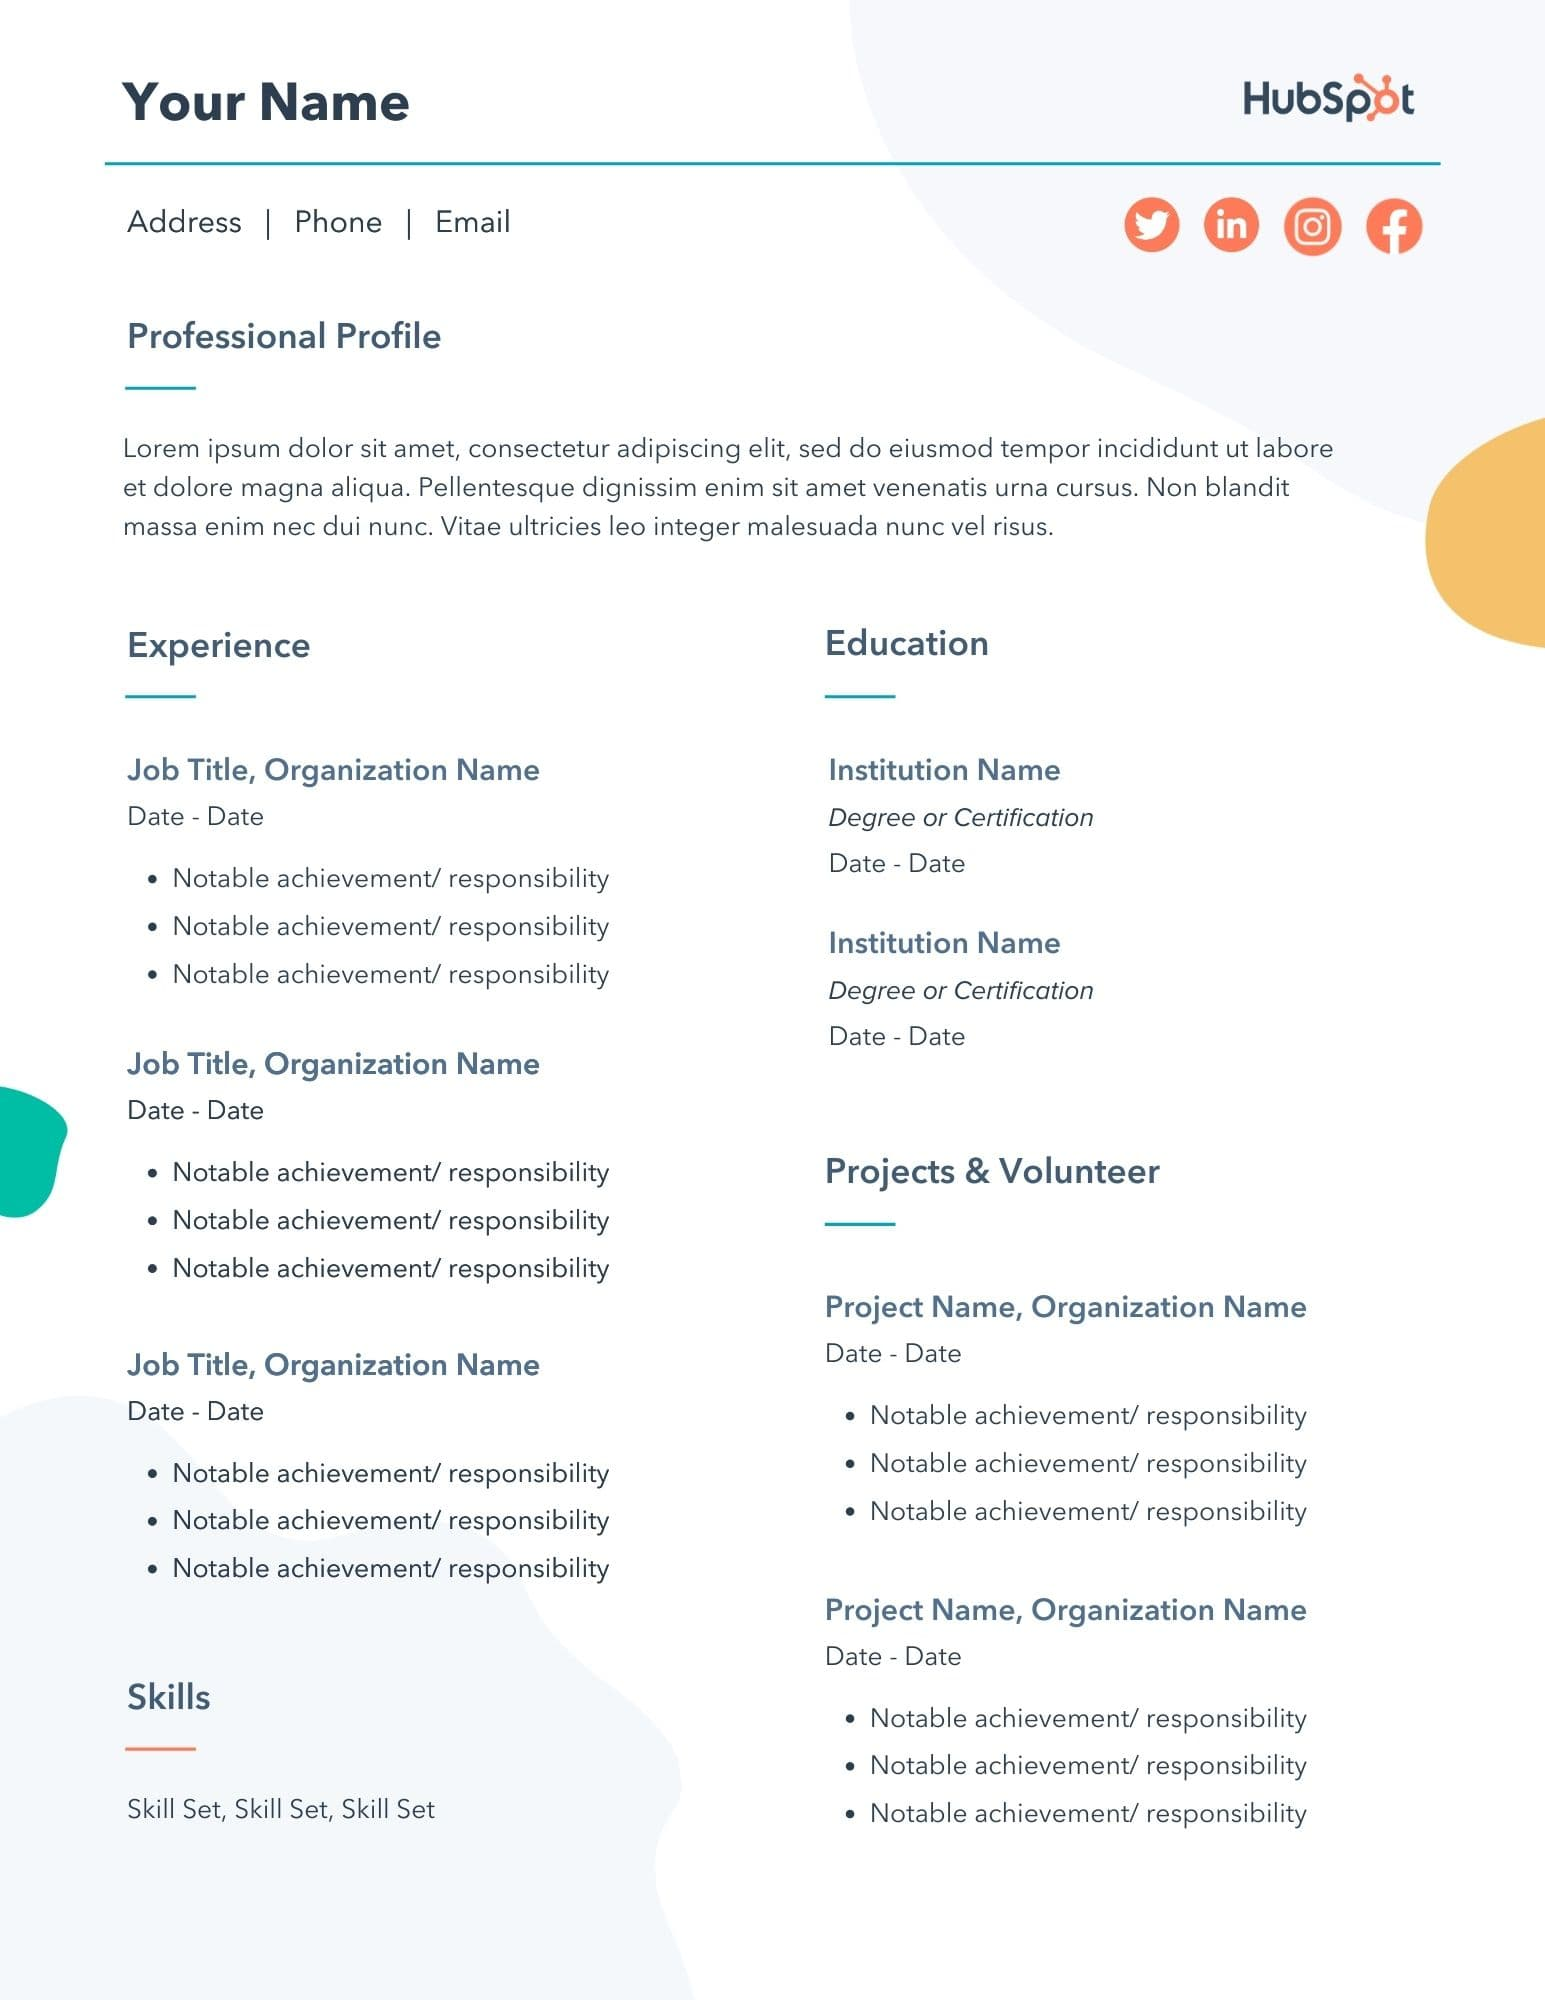 free resume templates for microsoft word to make your own outline document template Resume Resume Outline Word Document